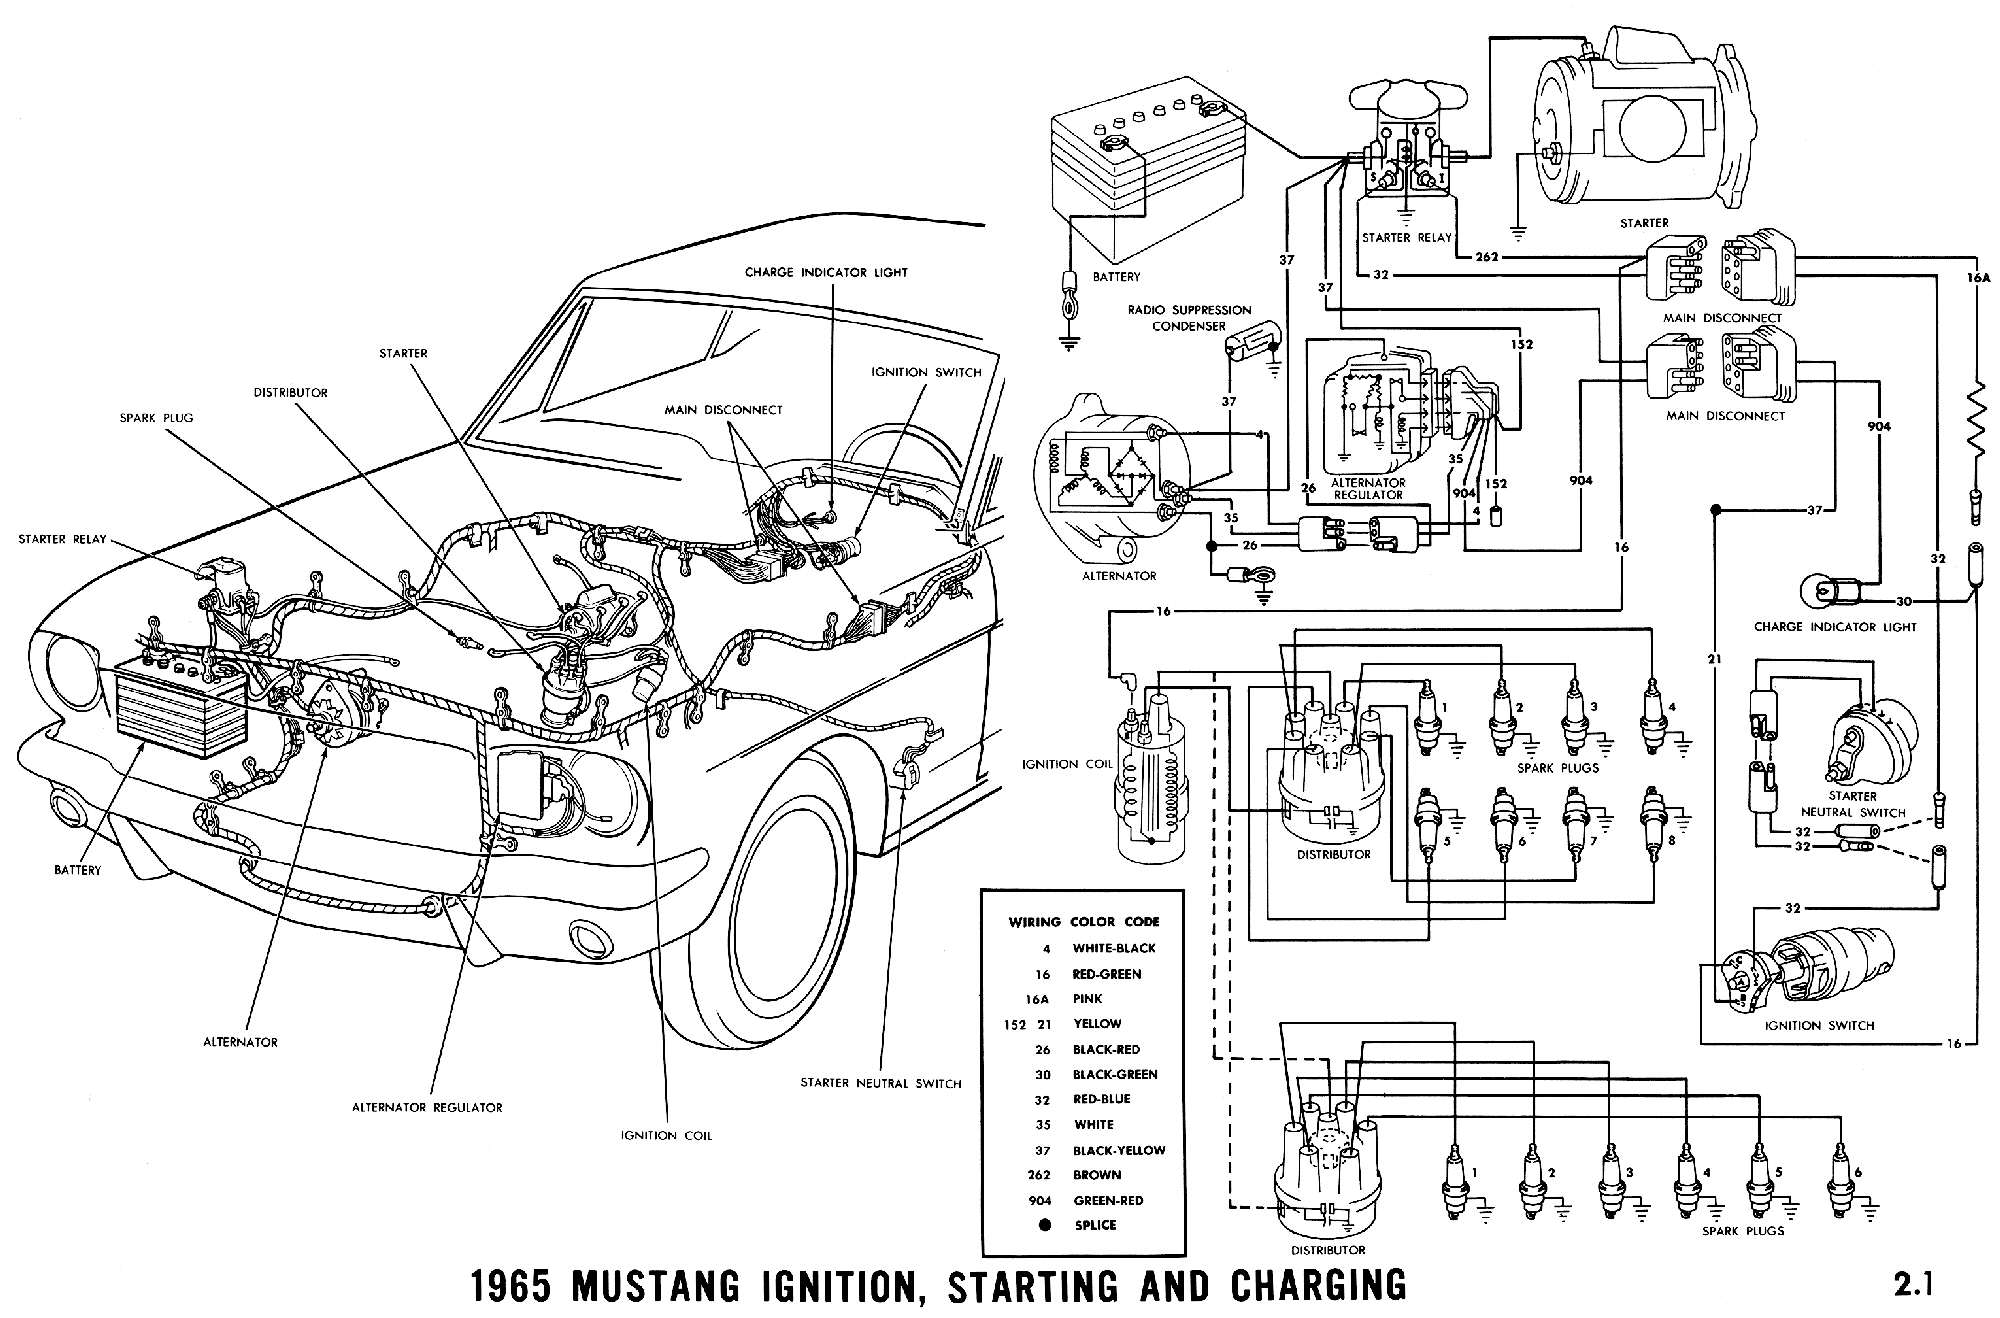 1966 mustang engine wiring 1965 ford mustang ignition switch wiring diagram  1966 mustang 289 engine diagram - soul.123vielgeld.de  wiring schematic diagram and worksheet resources